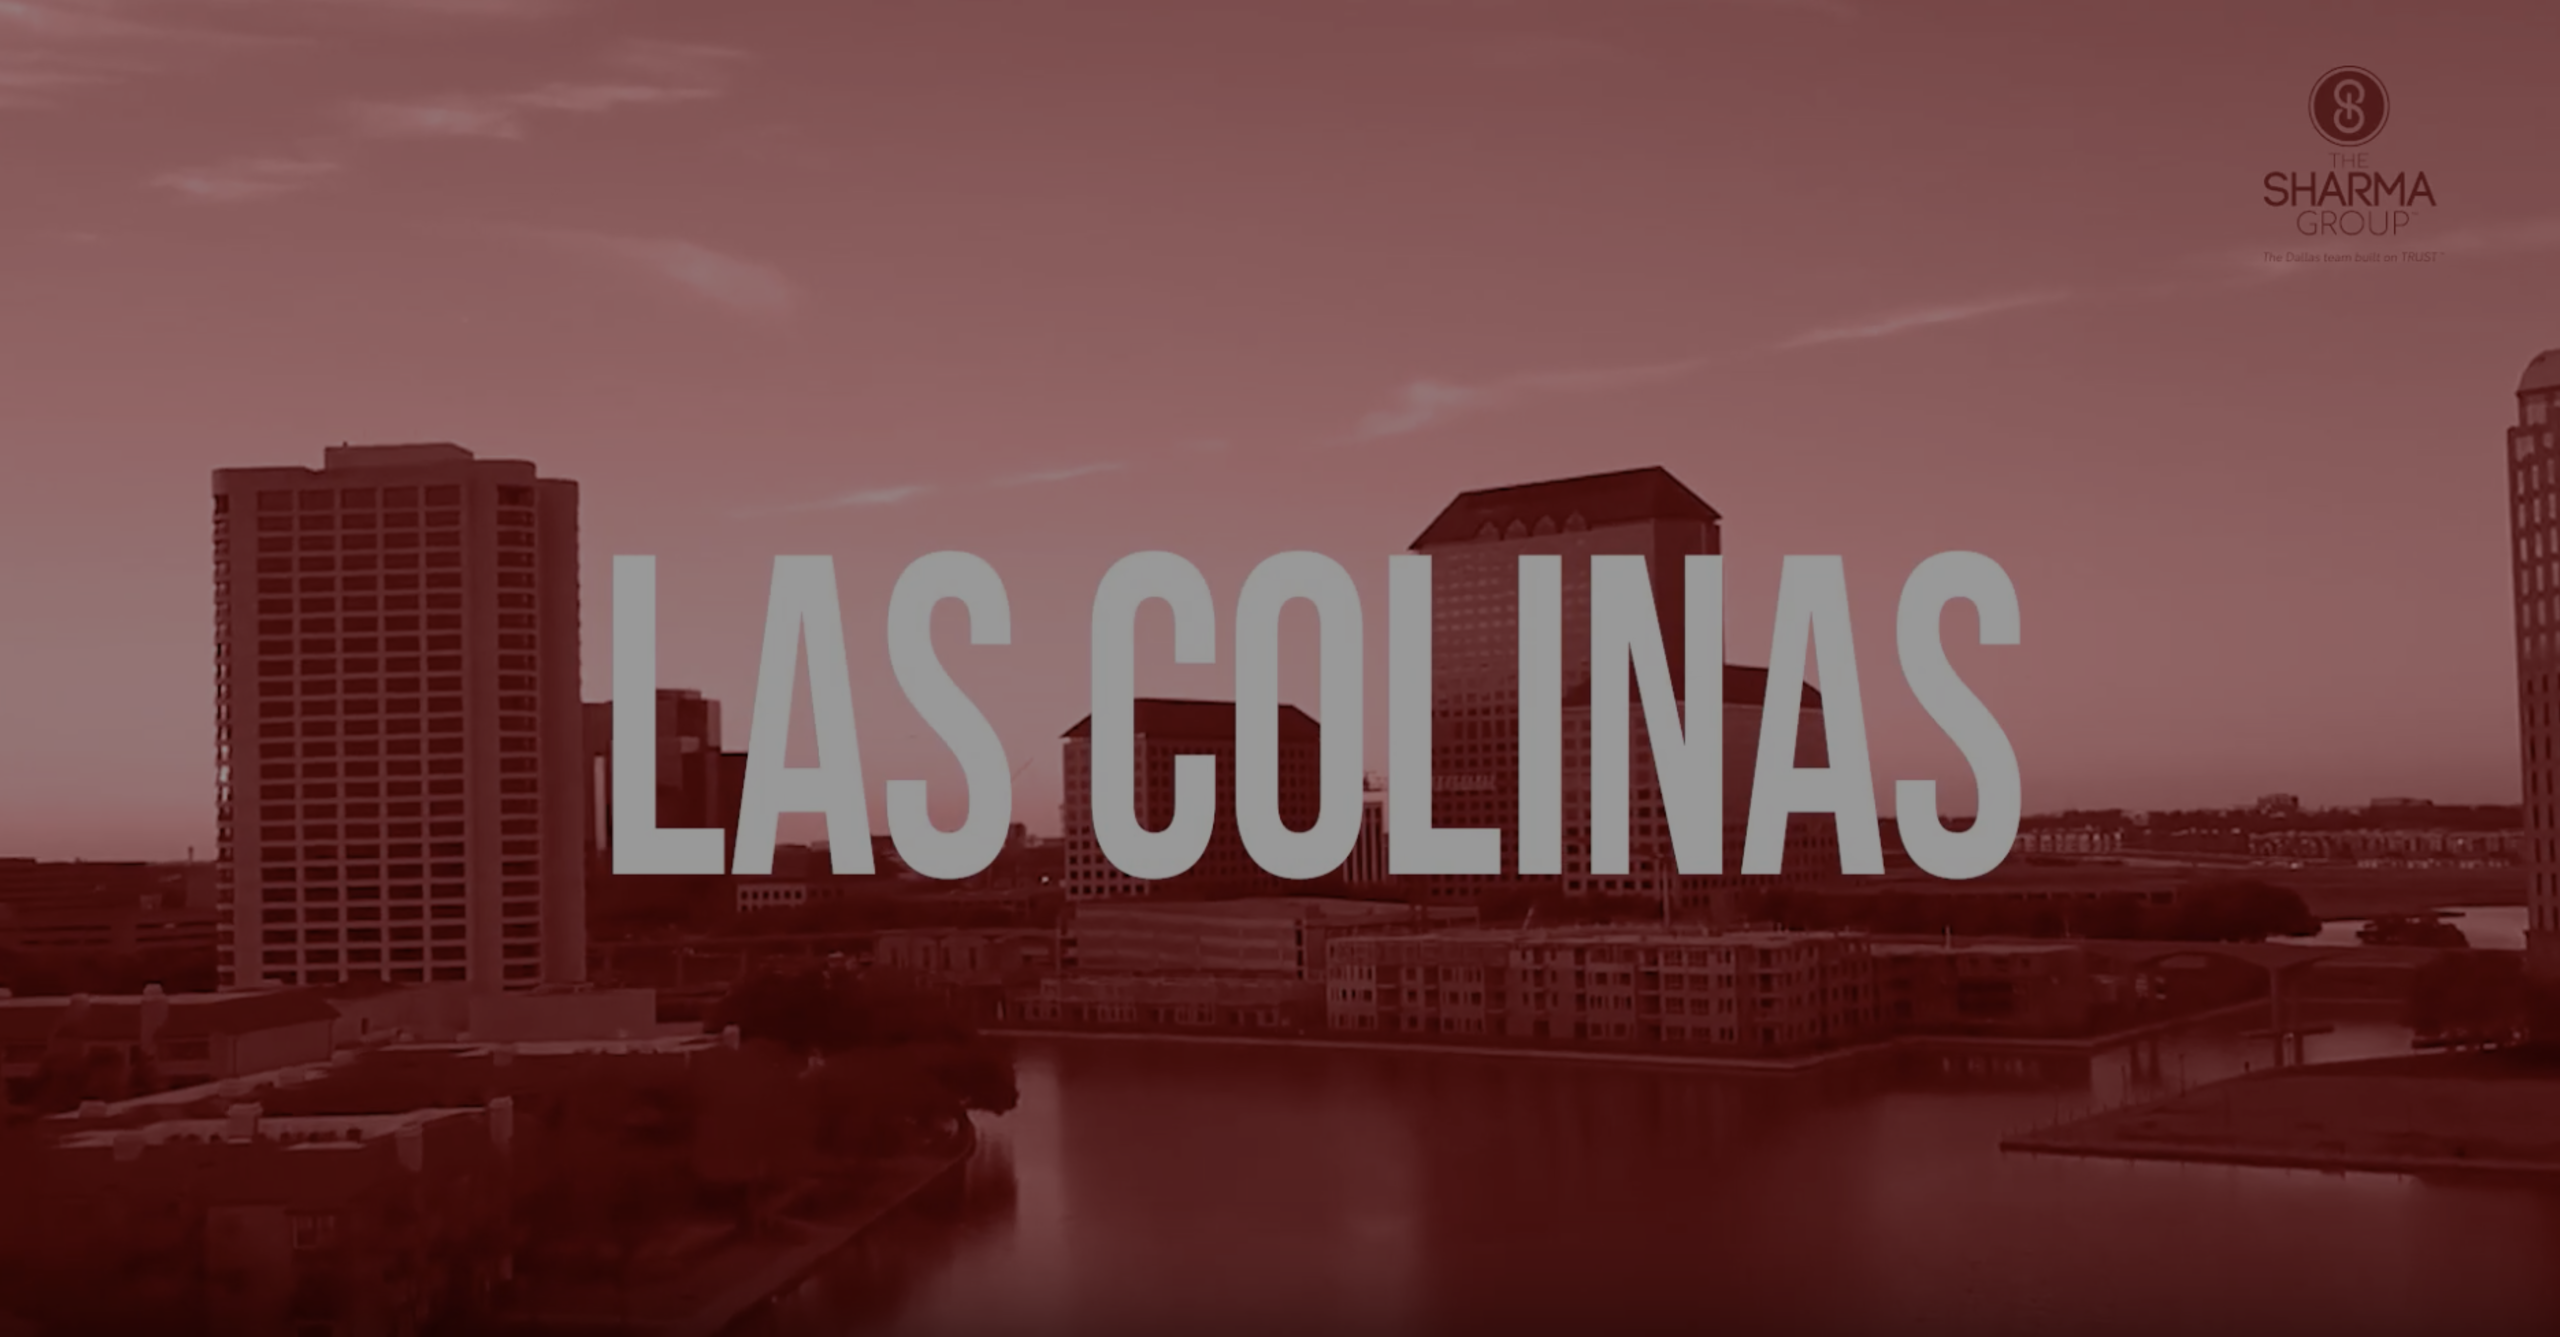 Welcome to Las Colinas | The Sharma Group